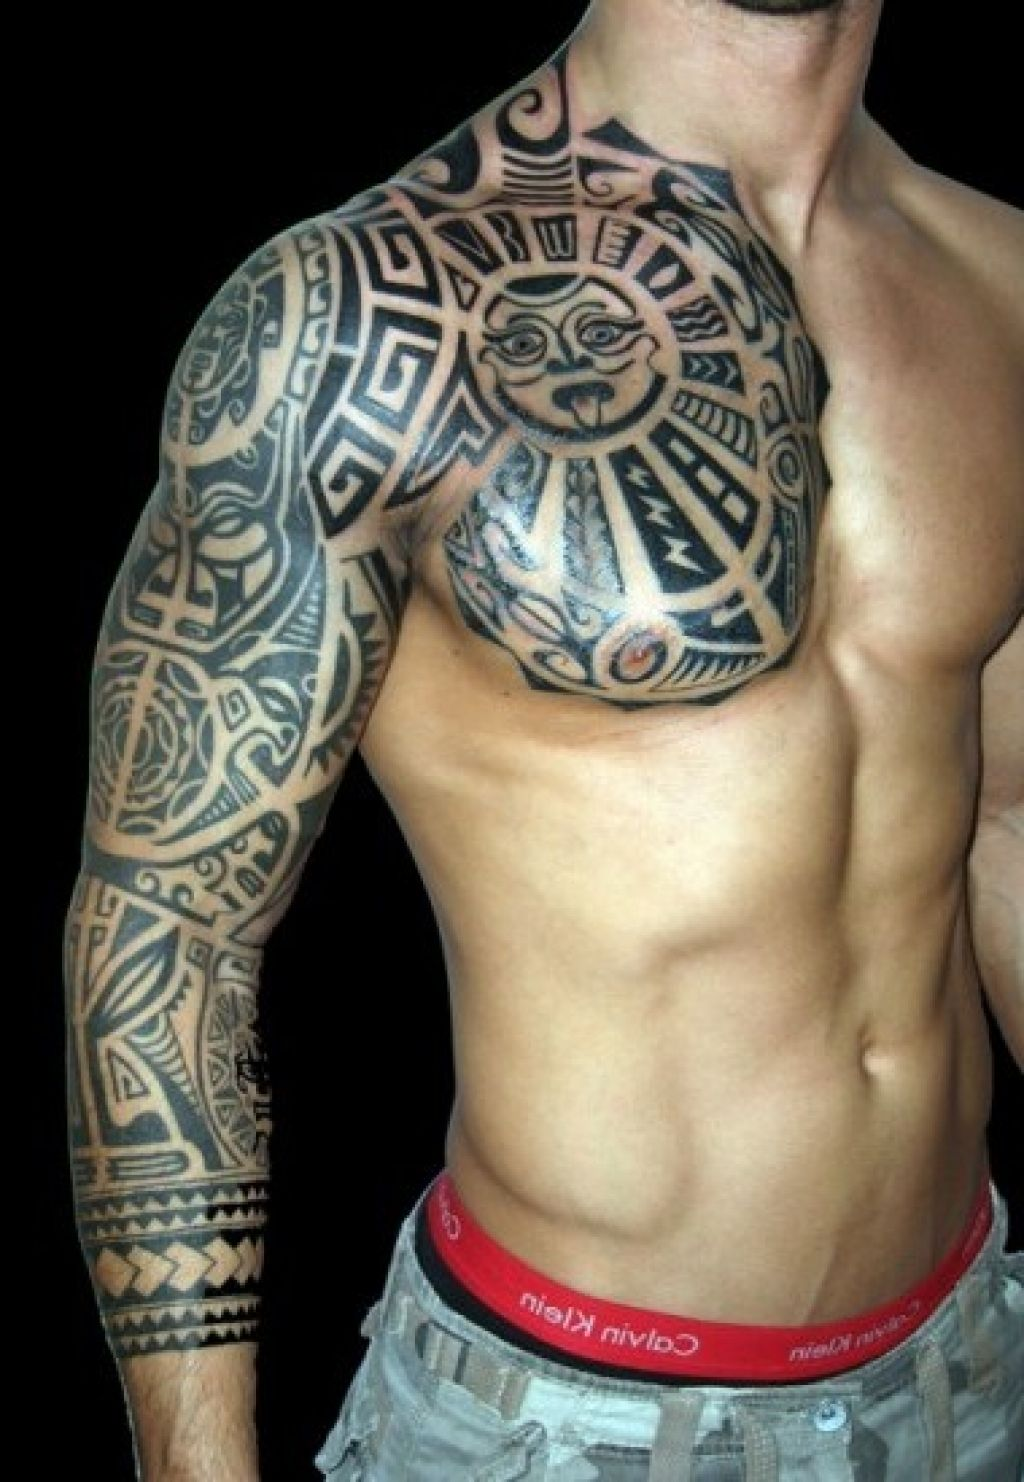 Sleeve Tattoo Image: Awesome Sleeve Tattoo Design Ideas